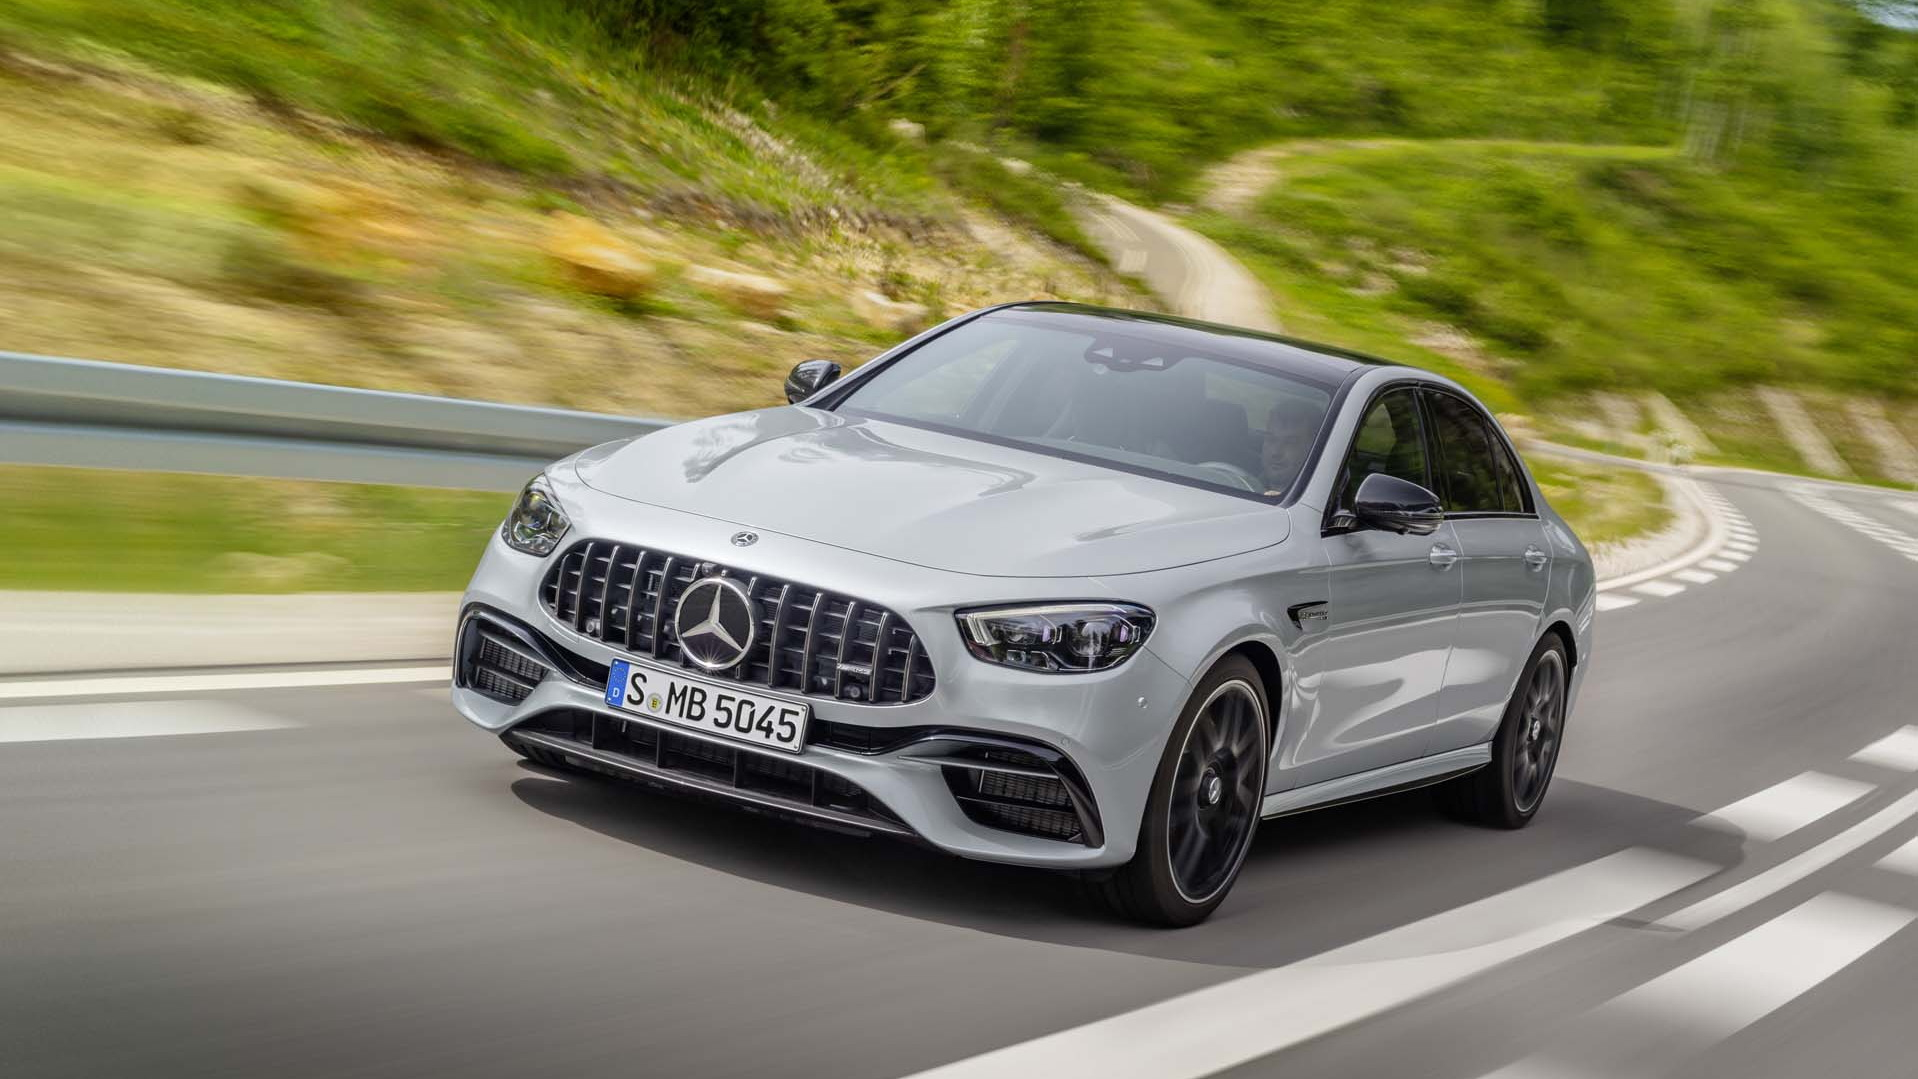 Pushing The Limits - Mercedes-AMG E63 S Unveiled